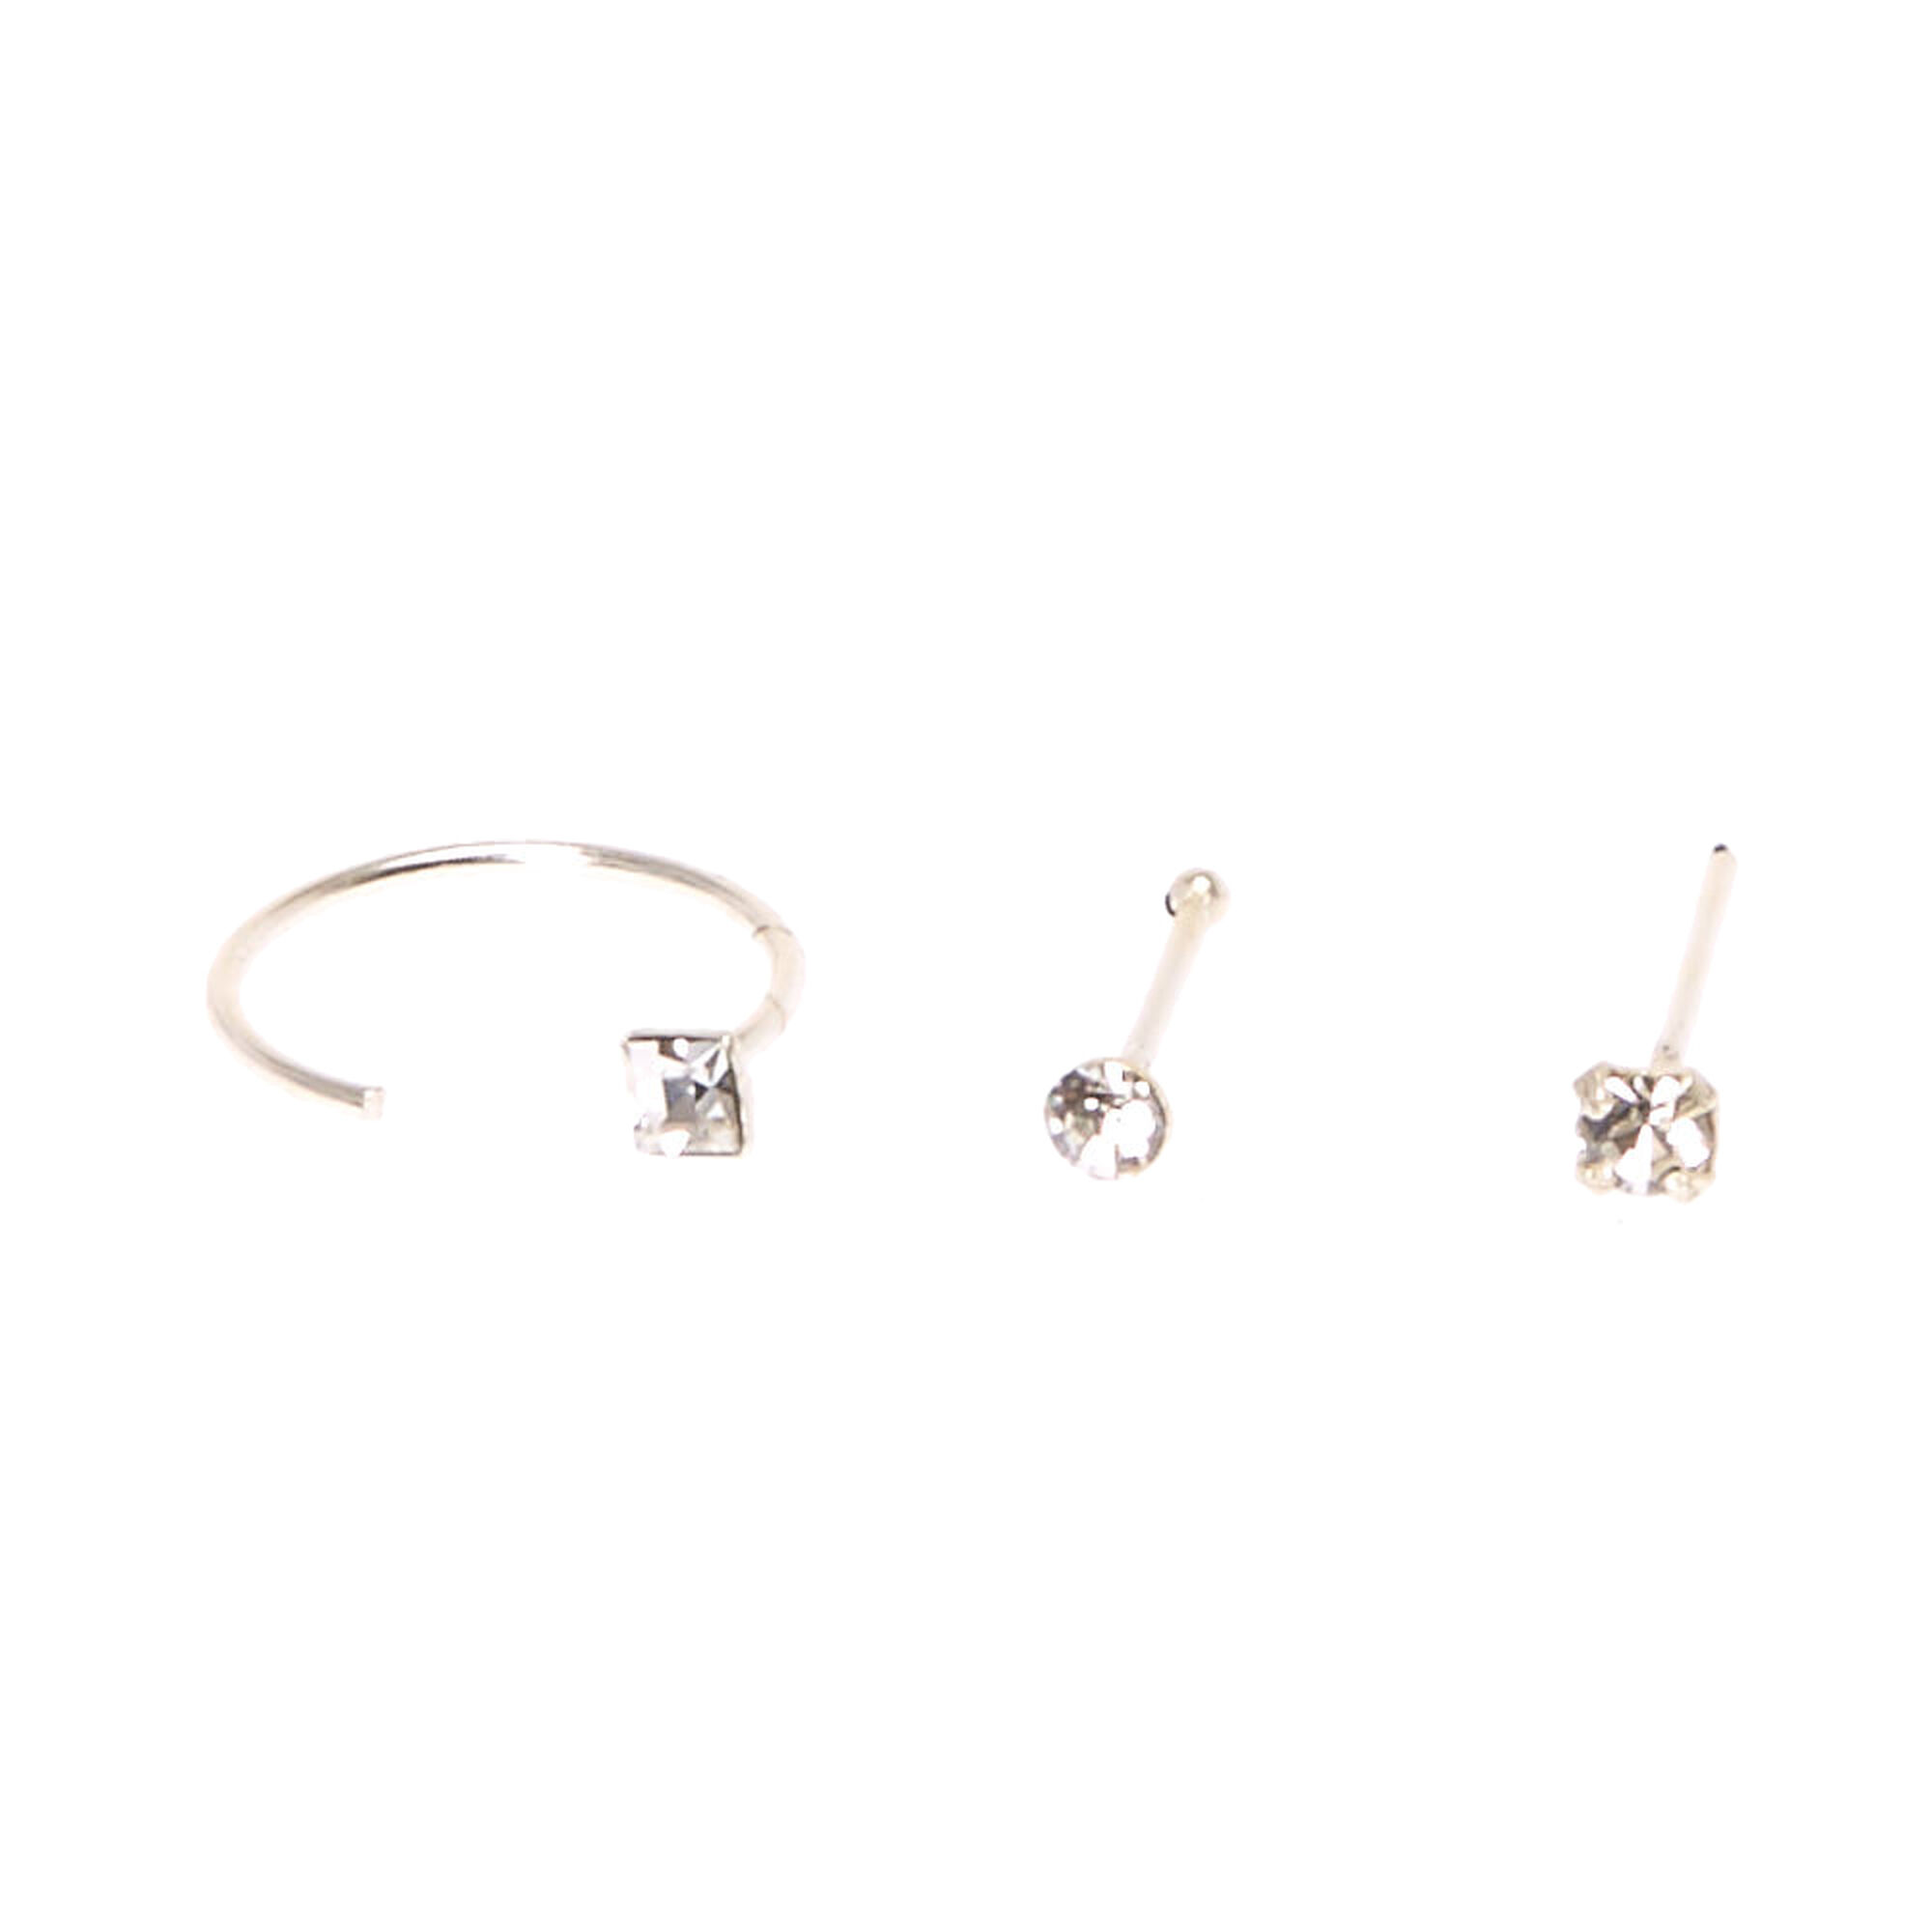 8c0dd8e5dab79 Sterling Silver Studs & Square Half Hoop Nose Rings